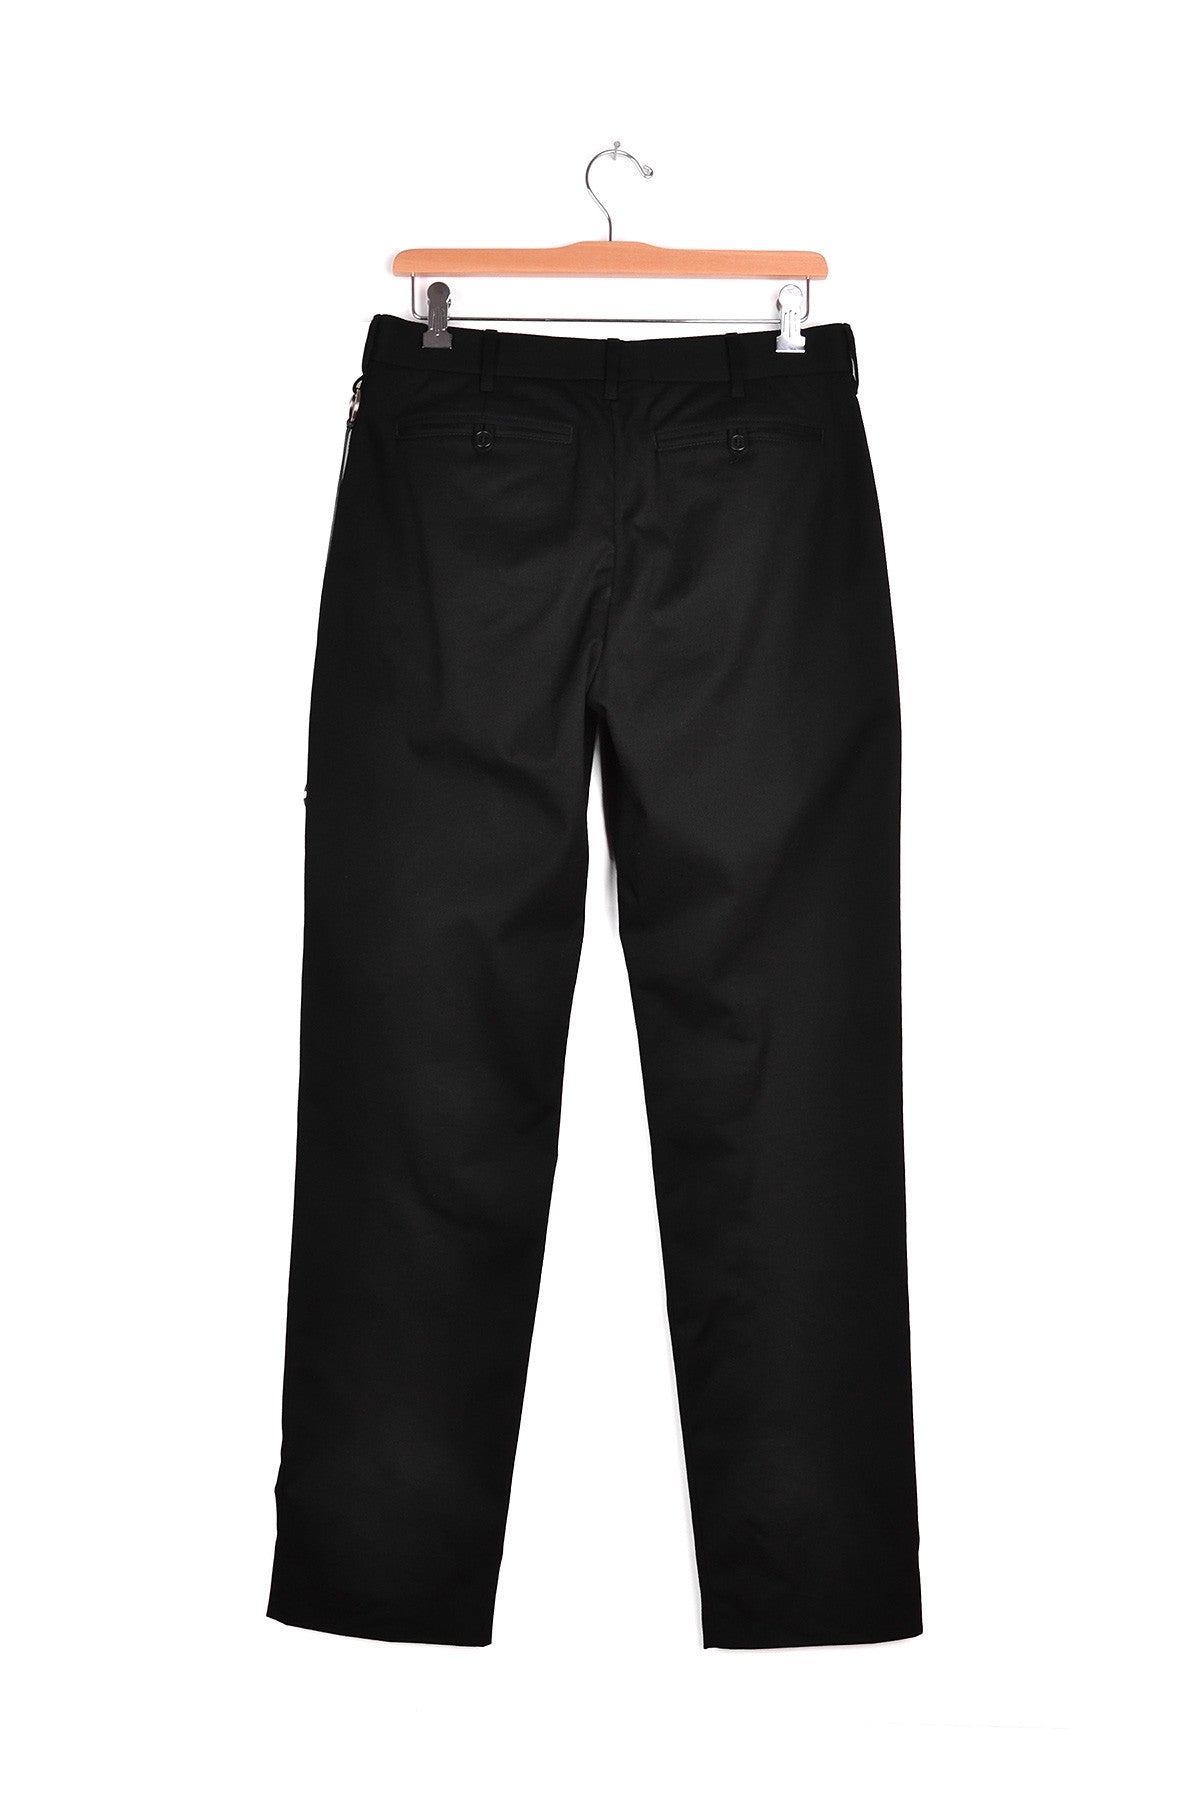 2003 A/W BLACK TROUSERS WITH KEYCHAIN DETAIL